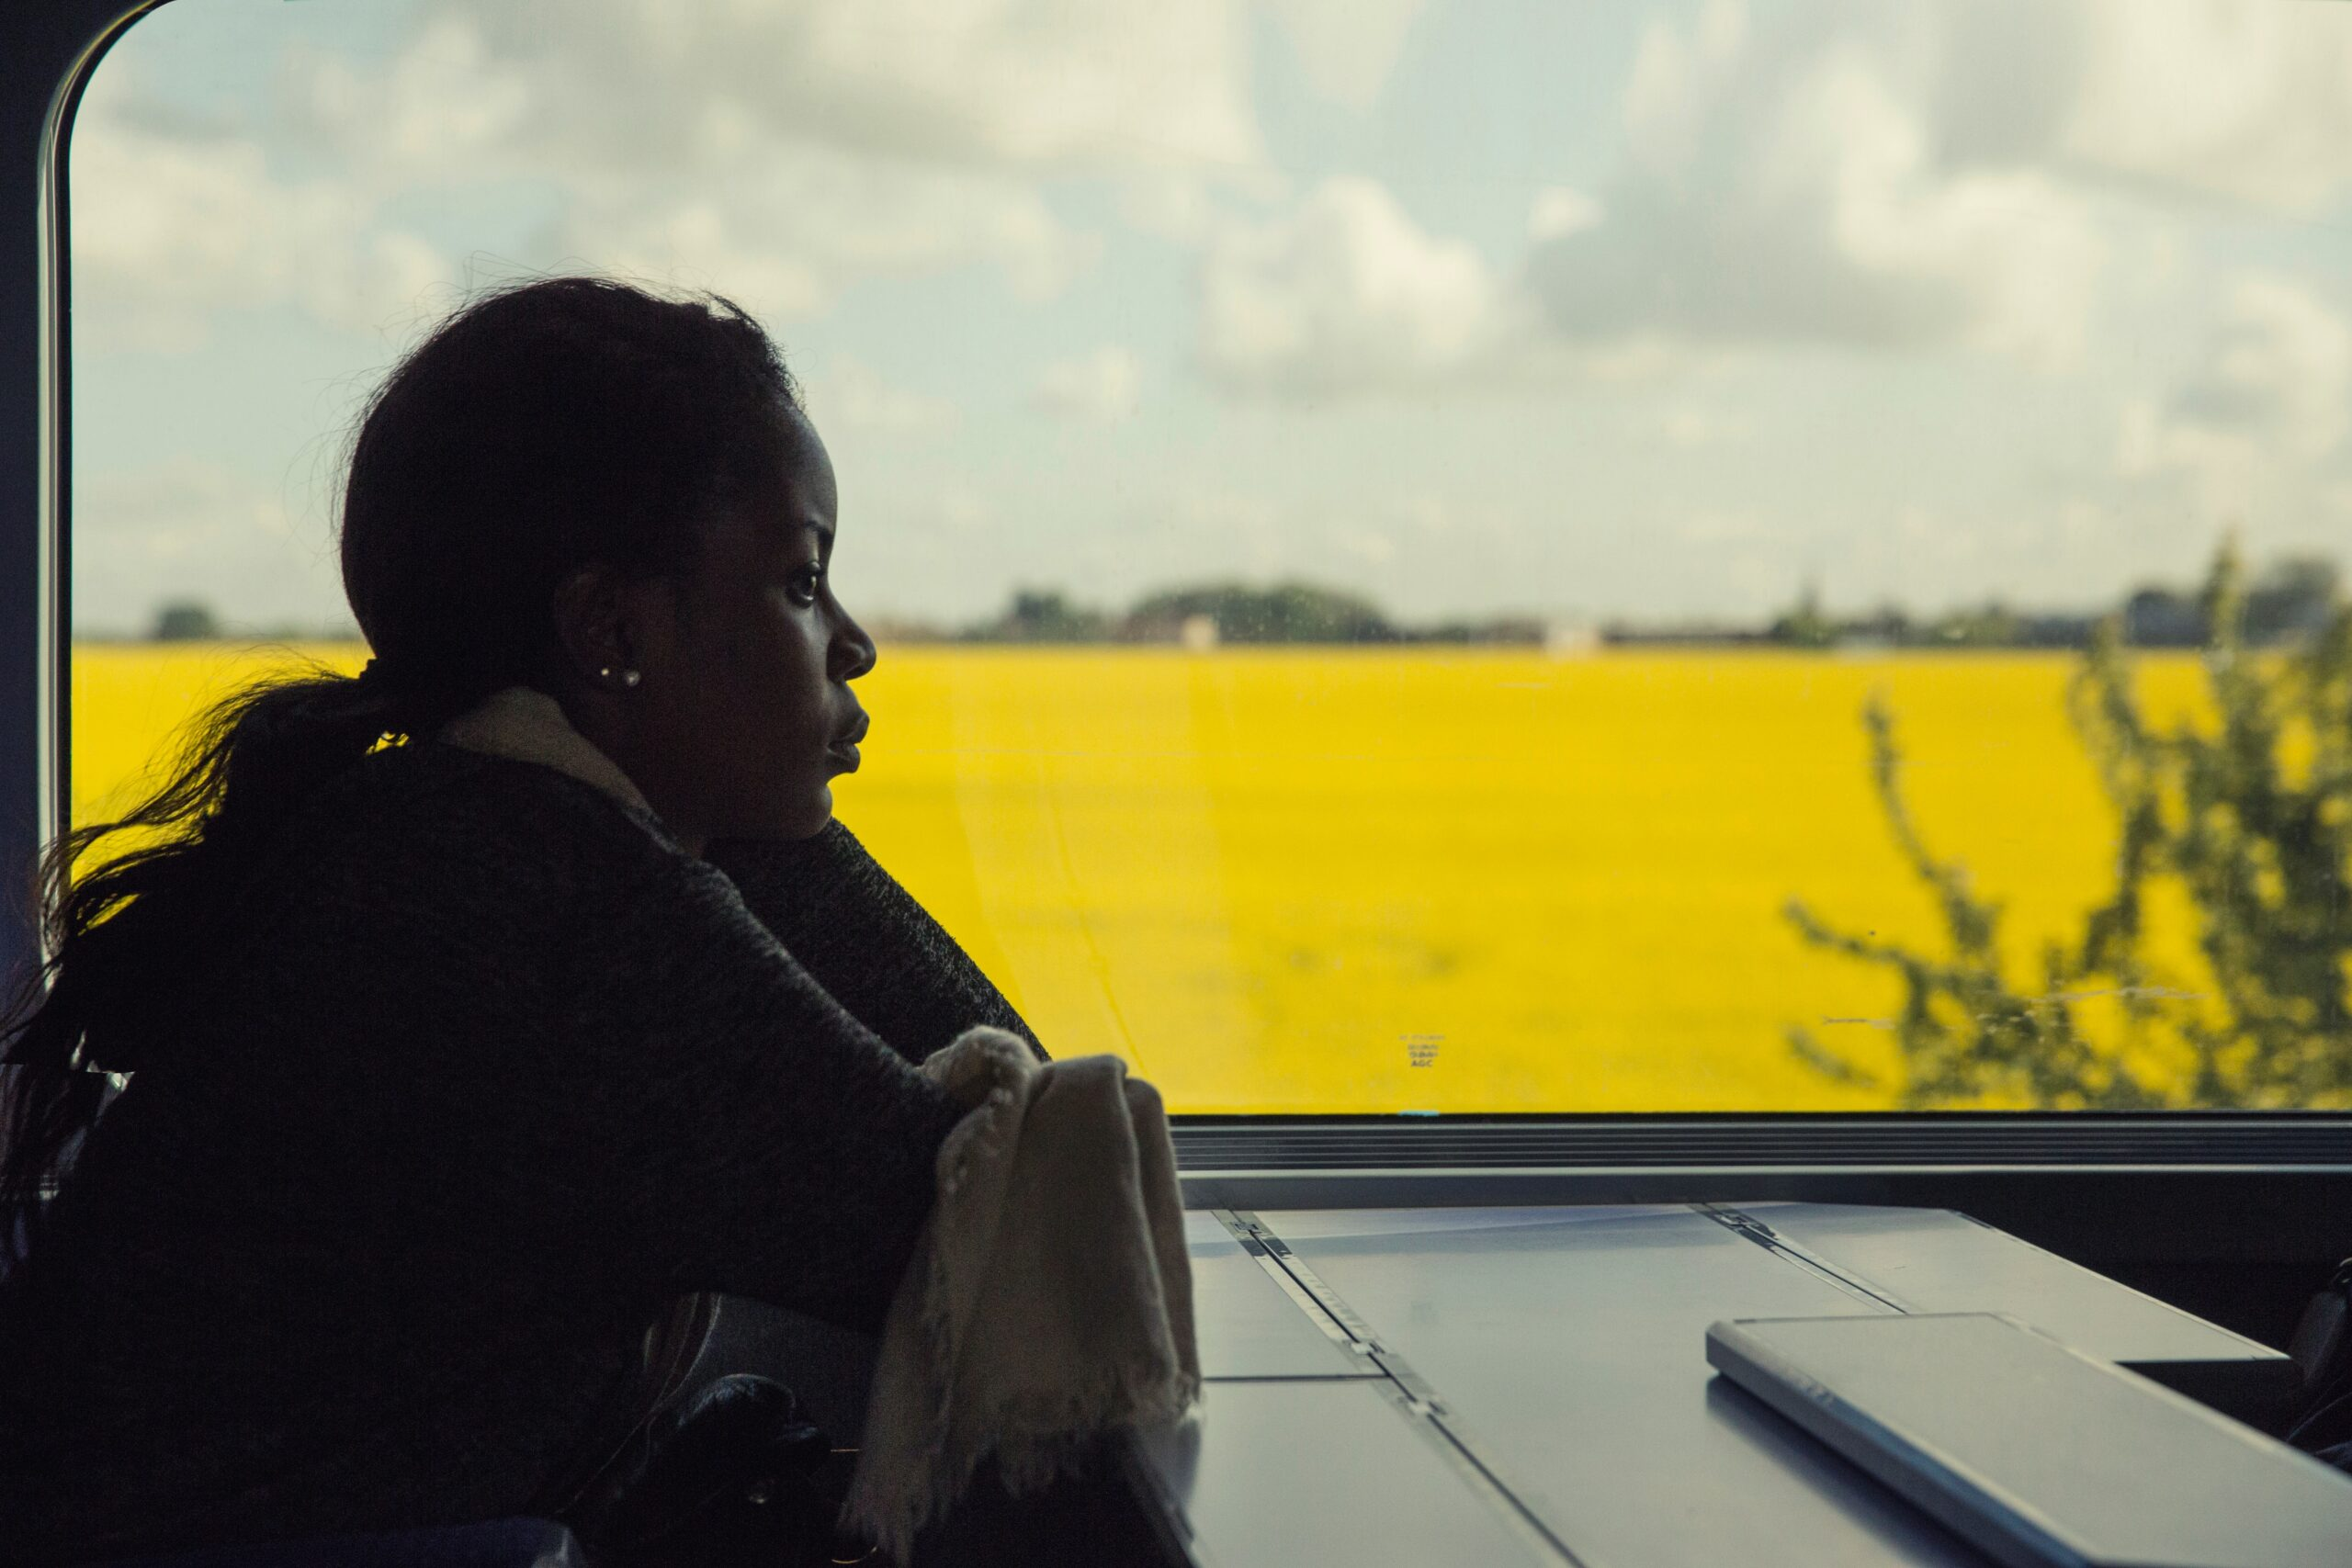 A woman sits on a train and stares into space demonstrating what burnout can look like for some people.